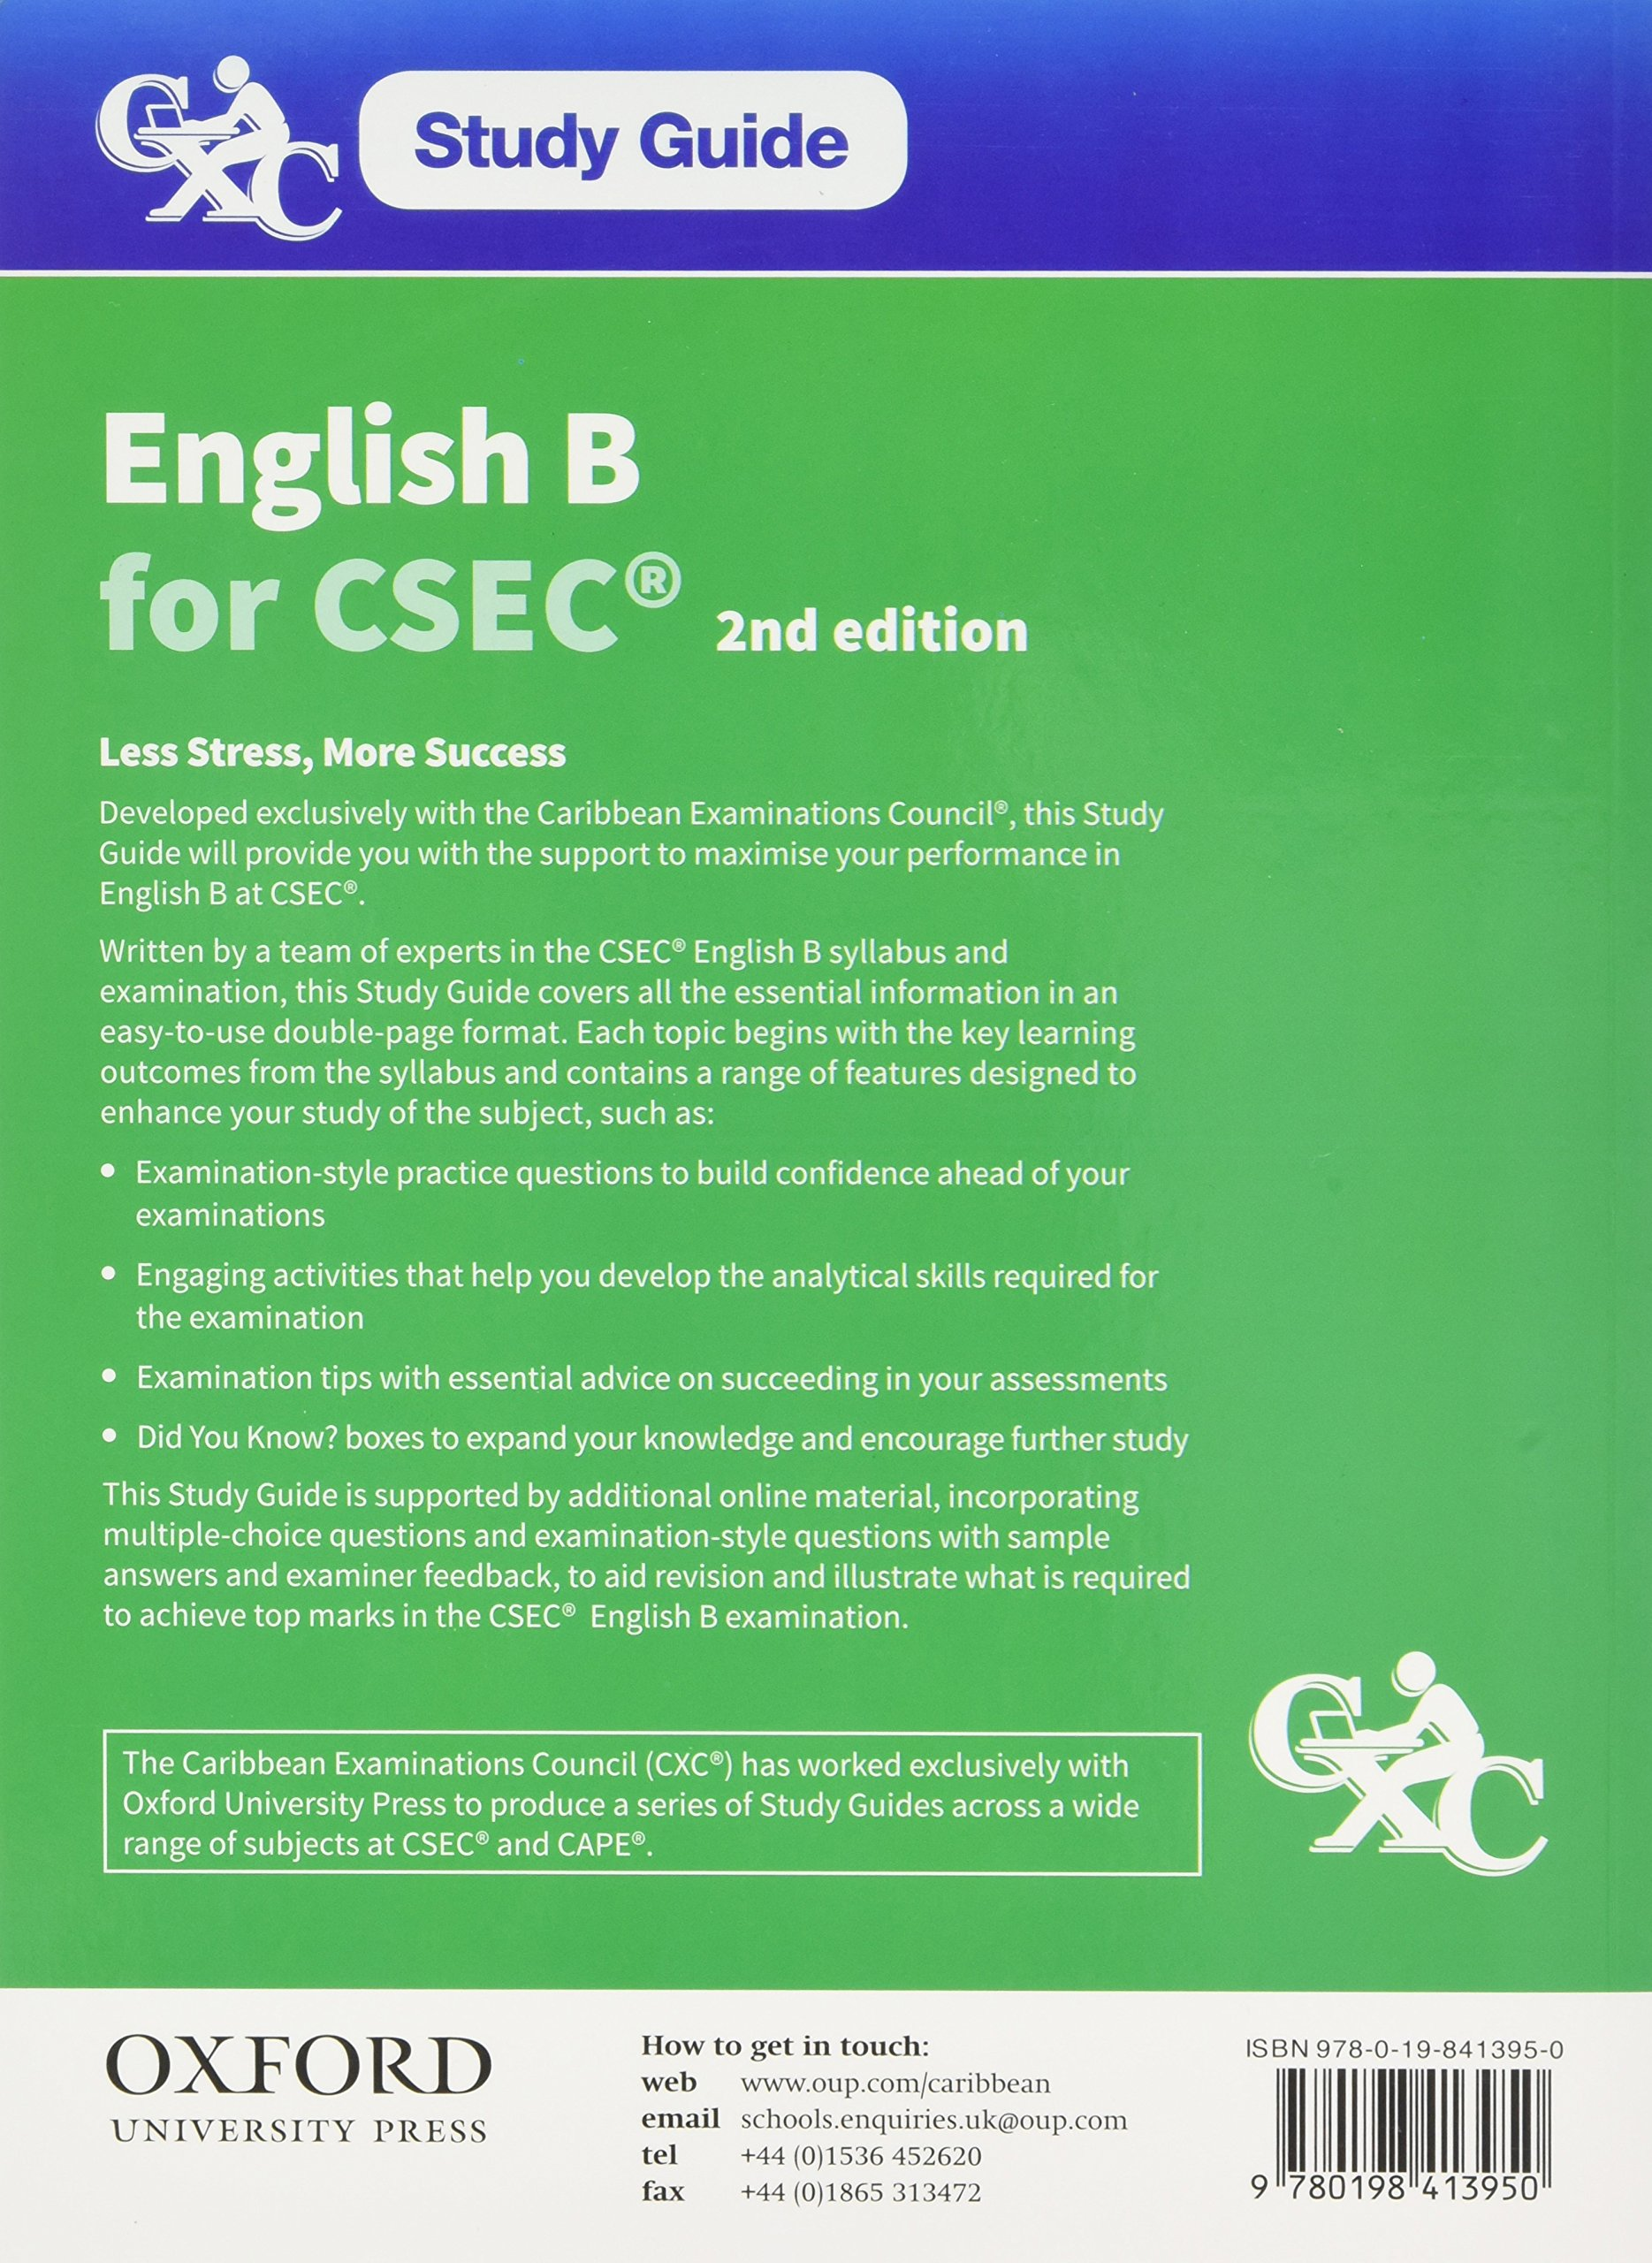 cxc study guide english b for csec arlene dwarika joyce e jonas rh amazon com 11th Grade English Study Guide English Grammar Study Guide